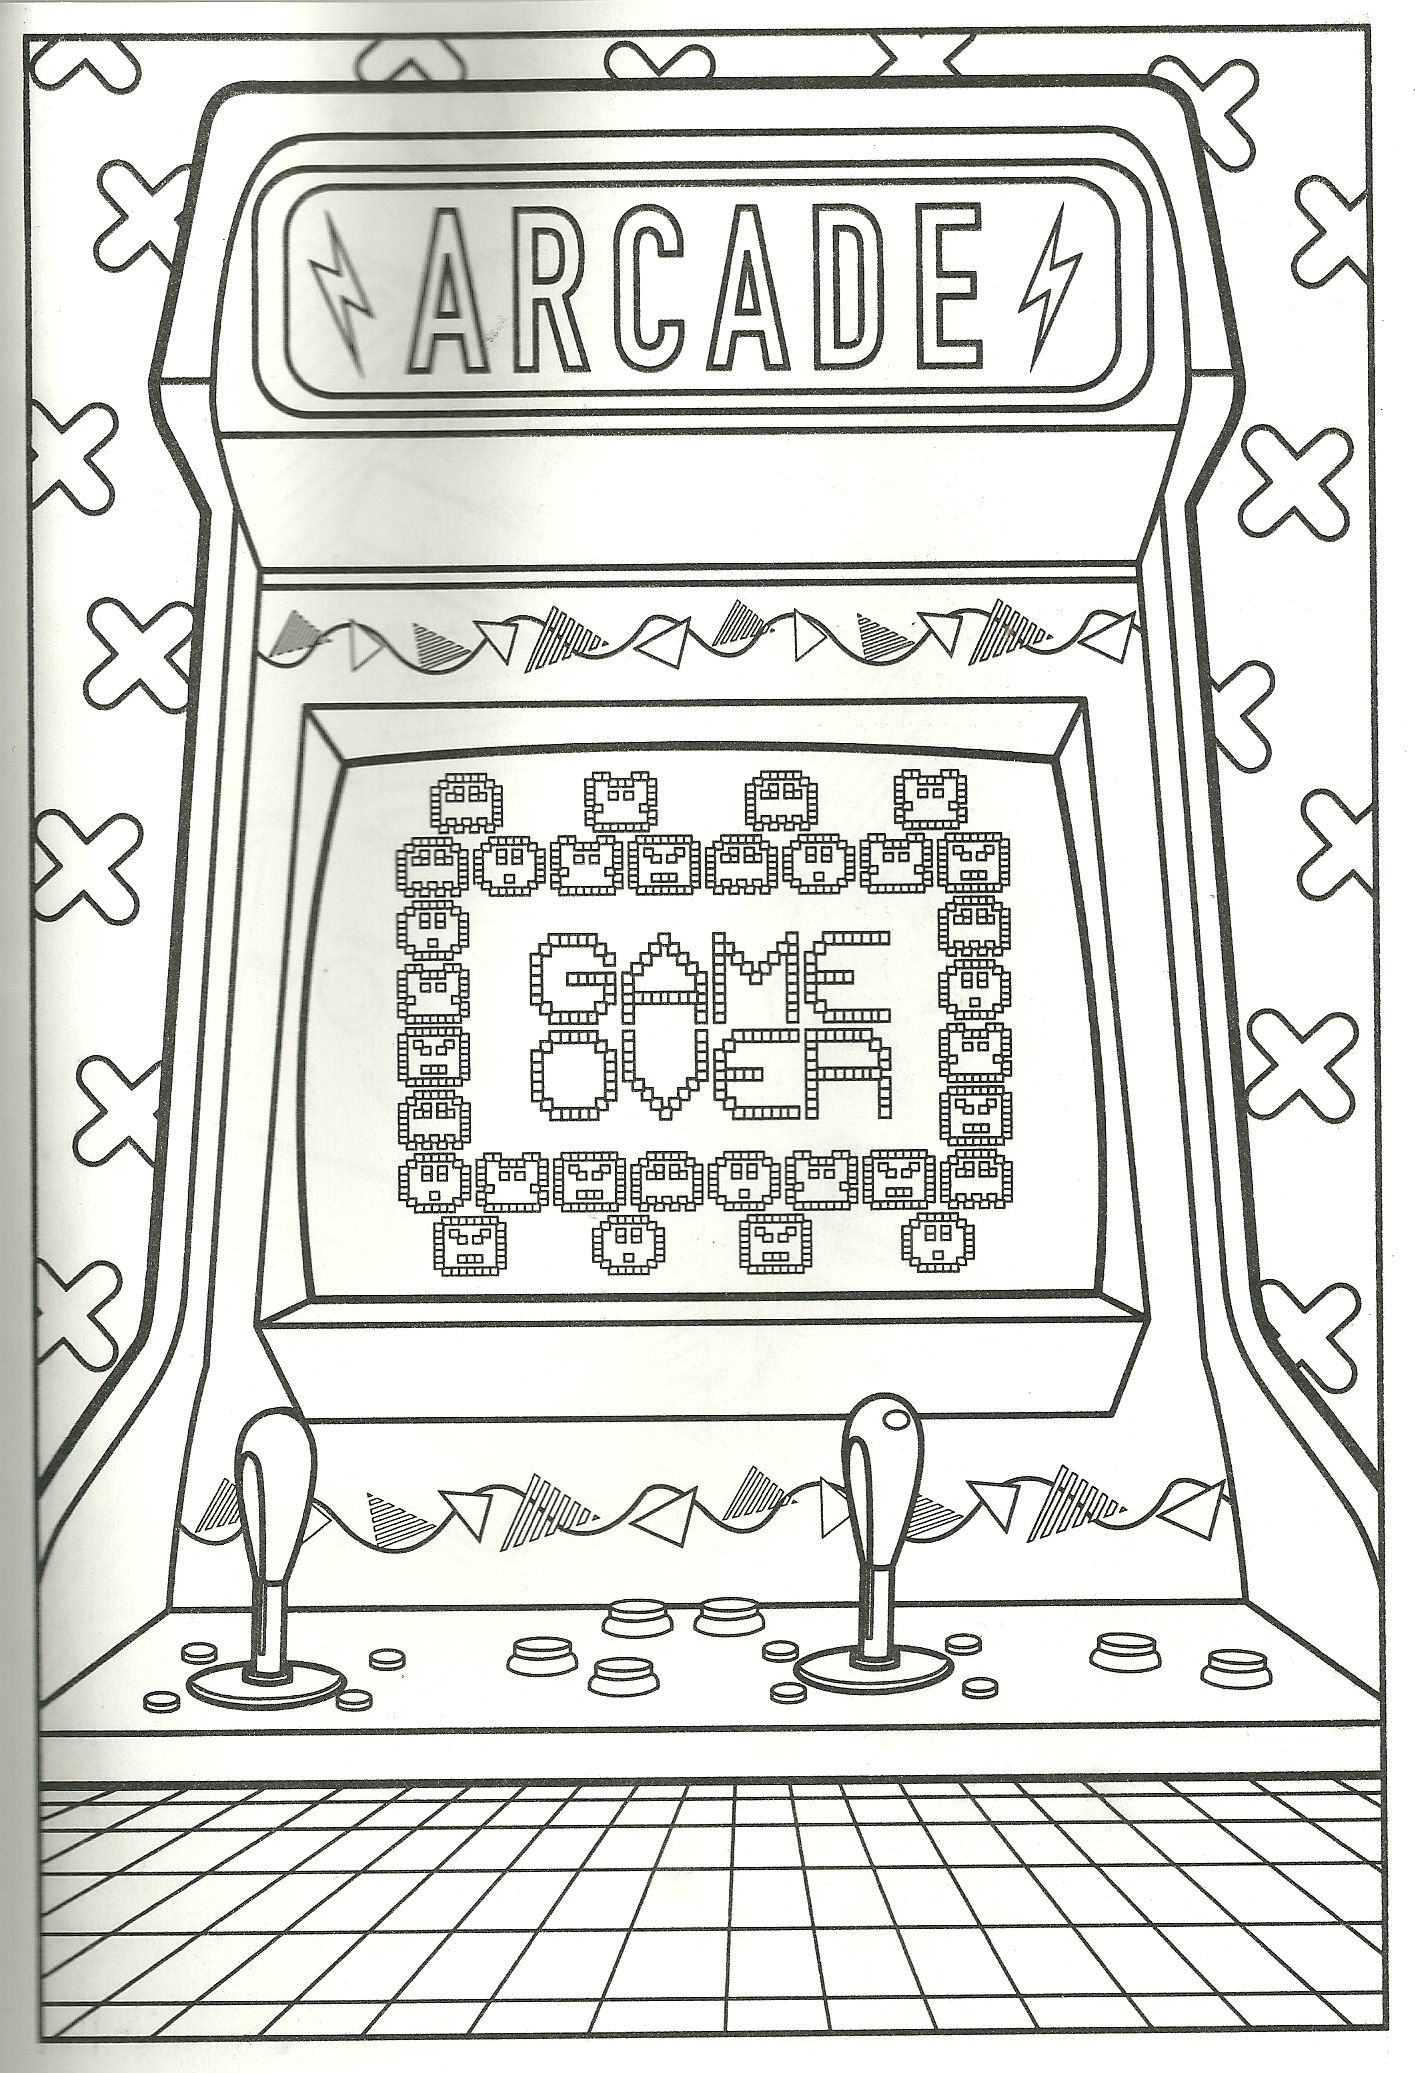 80s Arcade Pac Man Pong Or Whatever You Color It To Be